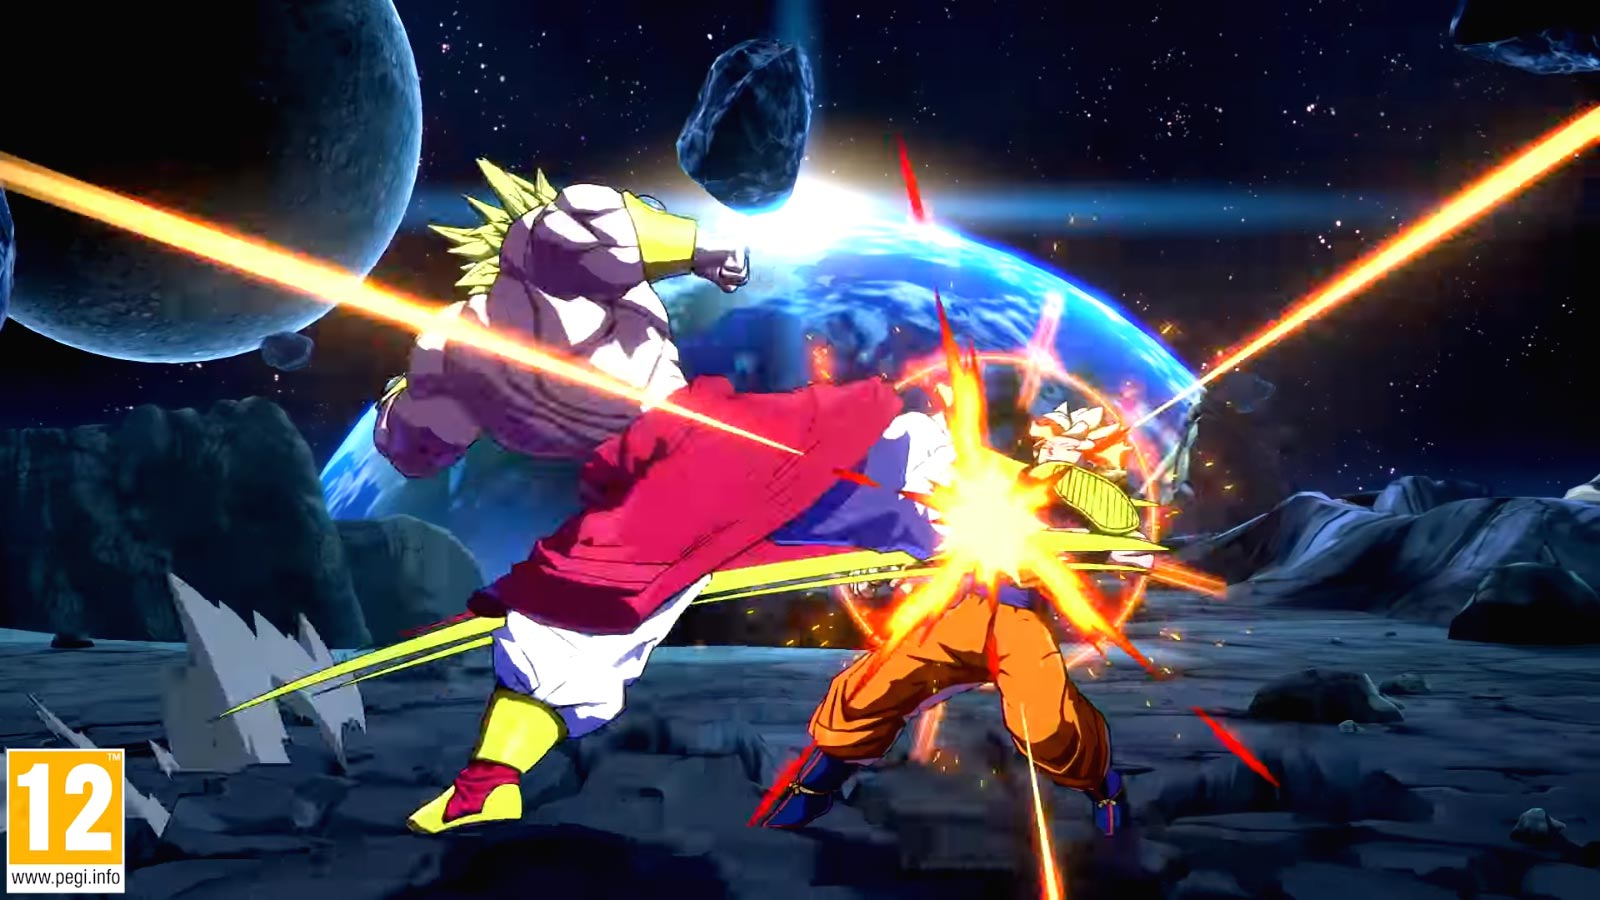 Broly in Dragon Ball FighterZ 5 out of 15 image gallery